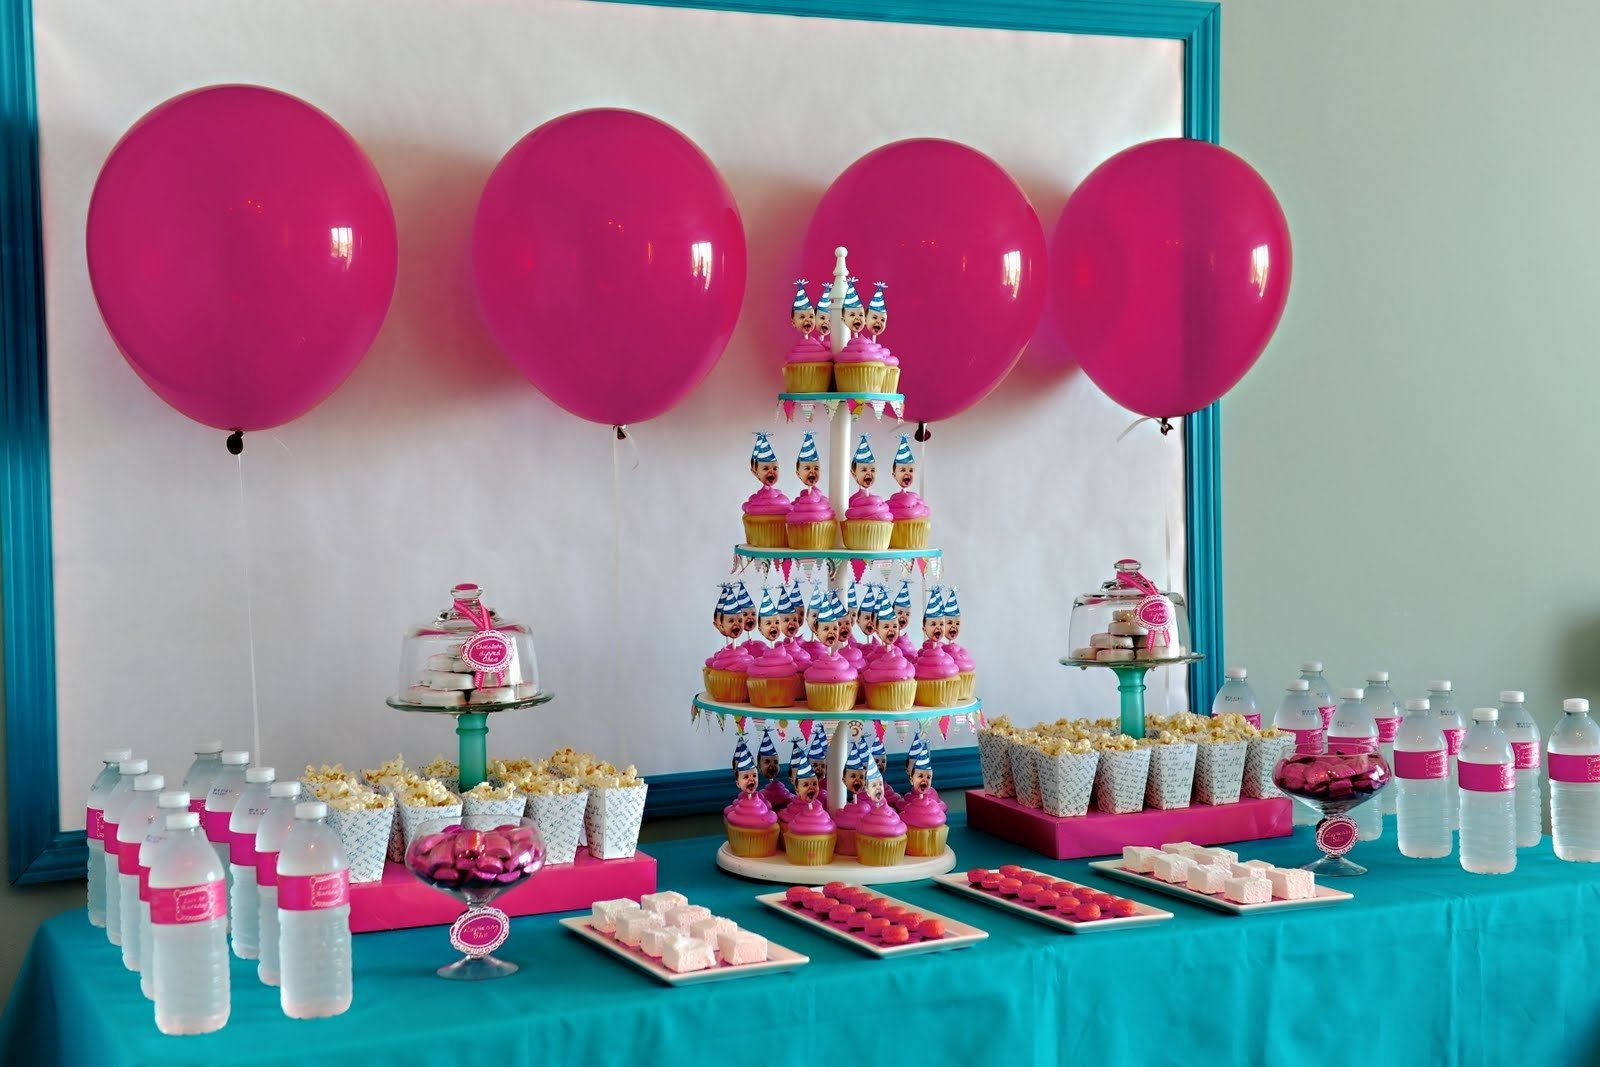 10 Most Recommended 2 Year Old Bday Party Ideas themes birthday a 2 year old birthday party ideas with 2 year old 1 2020